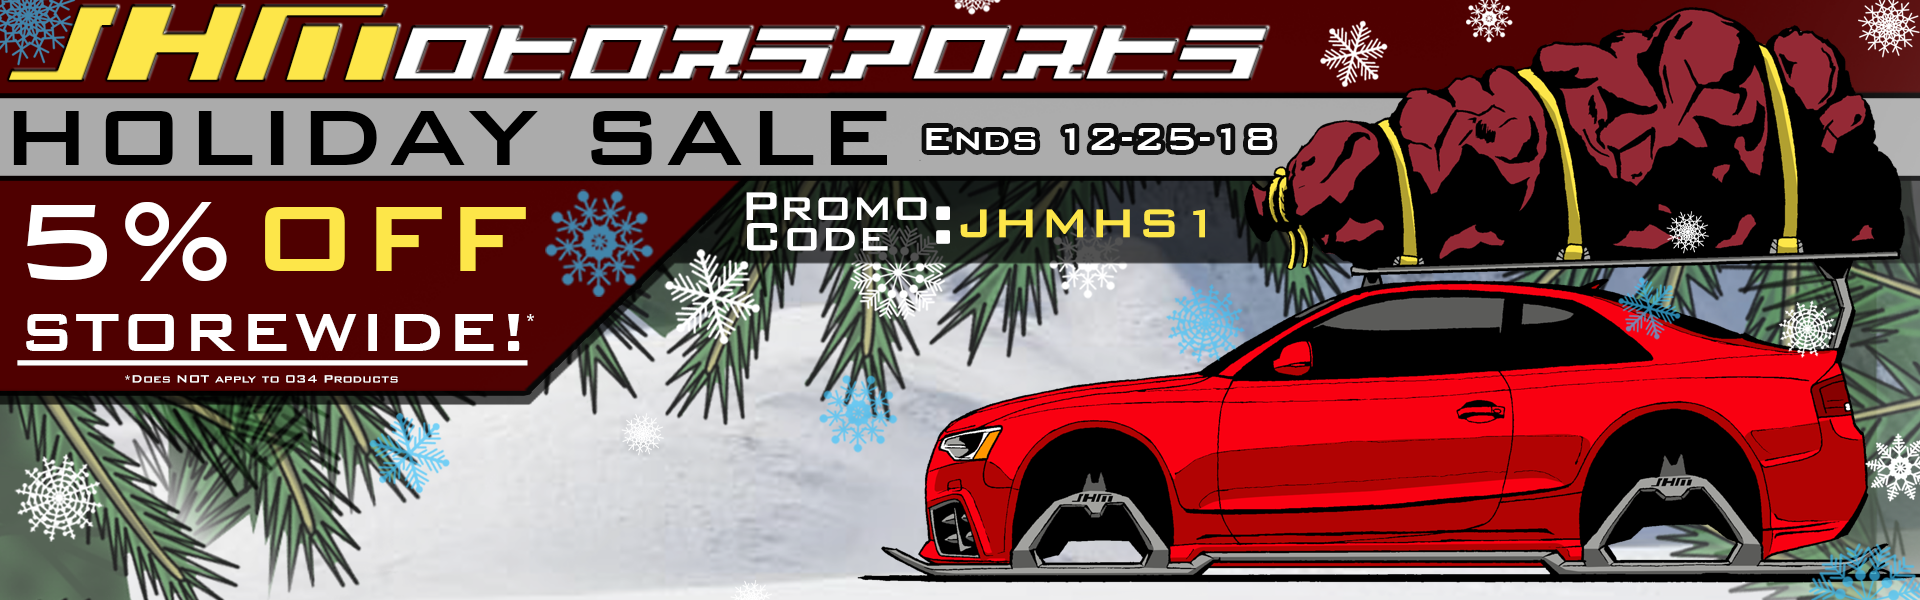 JHM HOLIDAY SALE